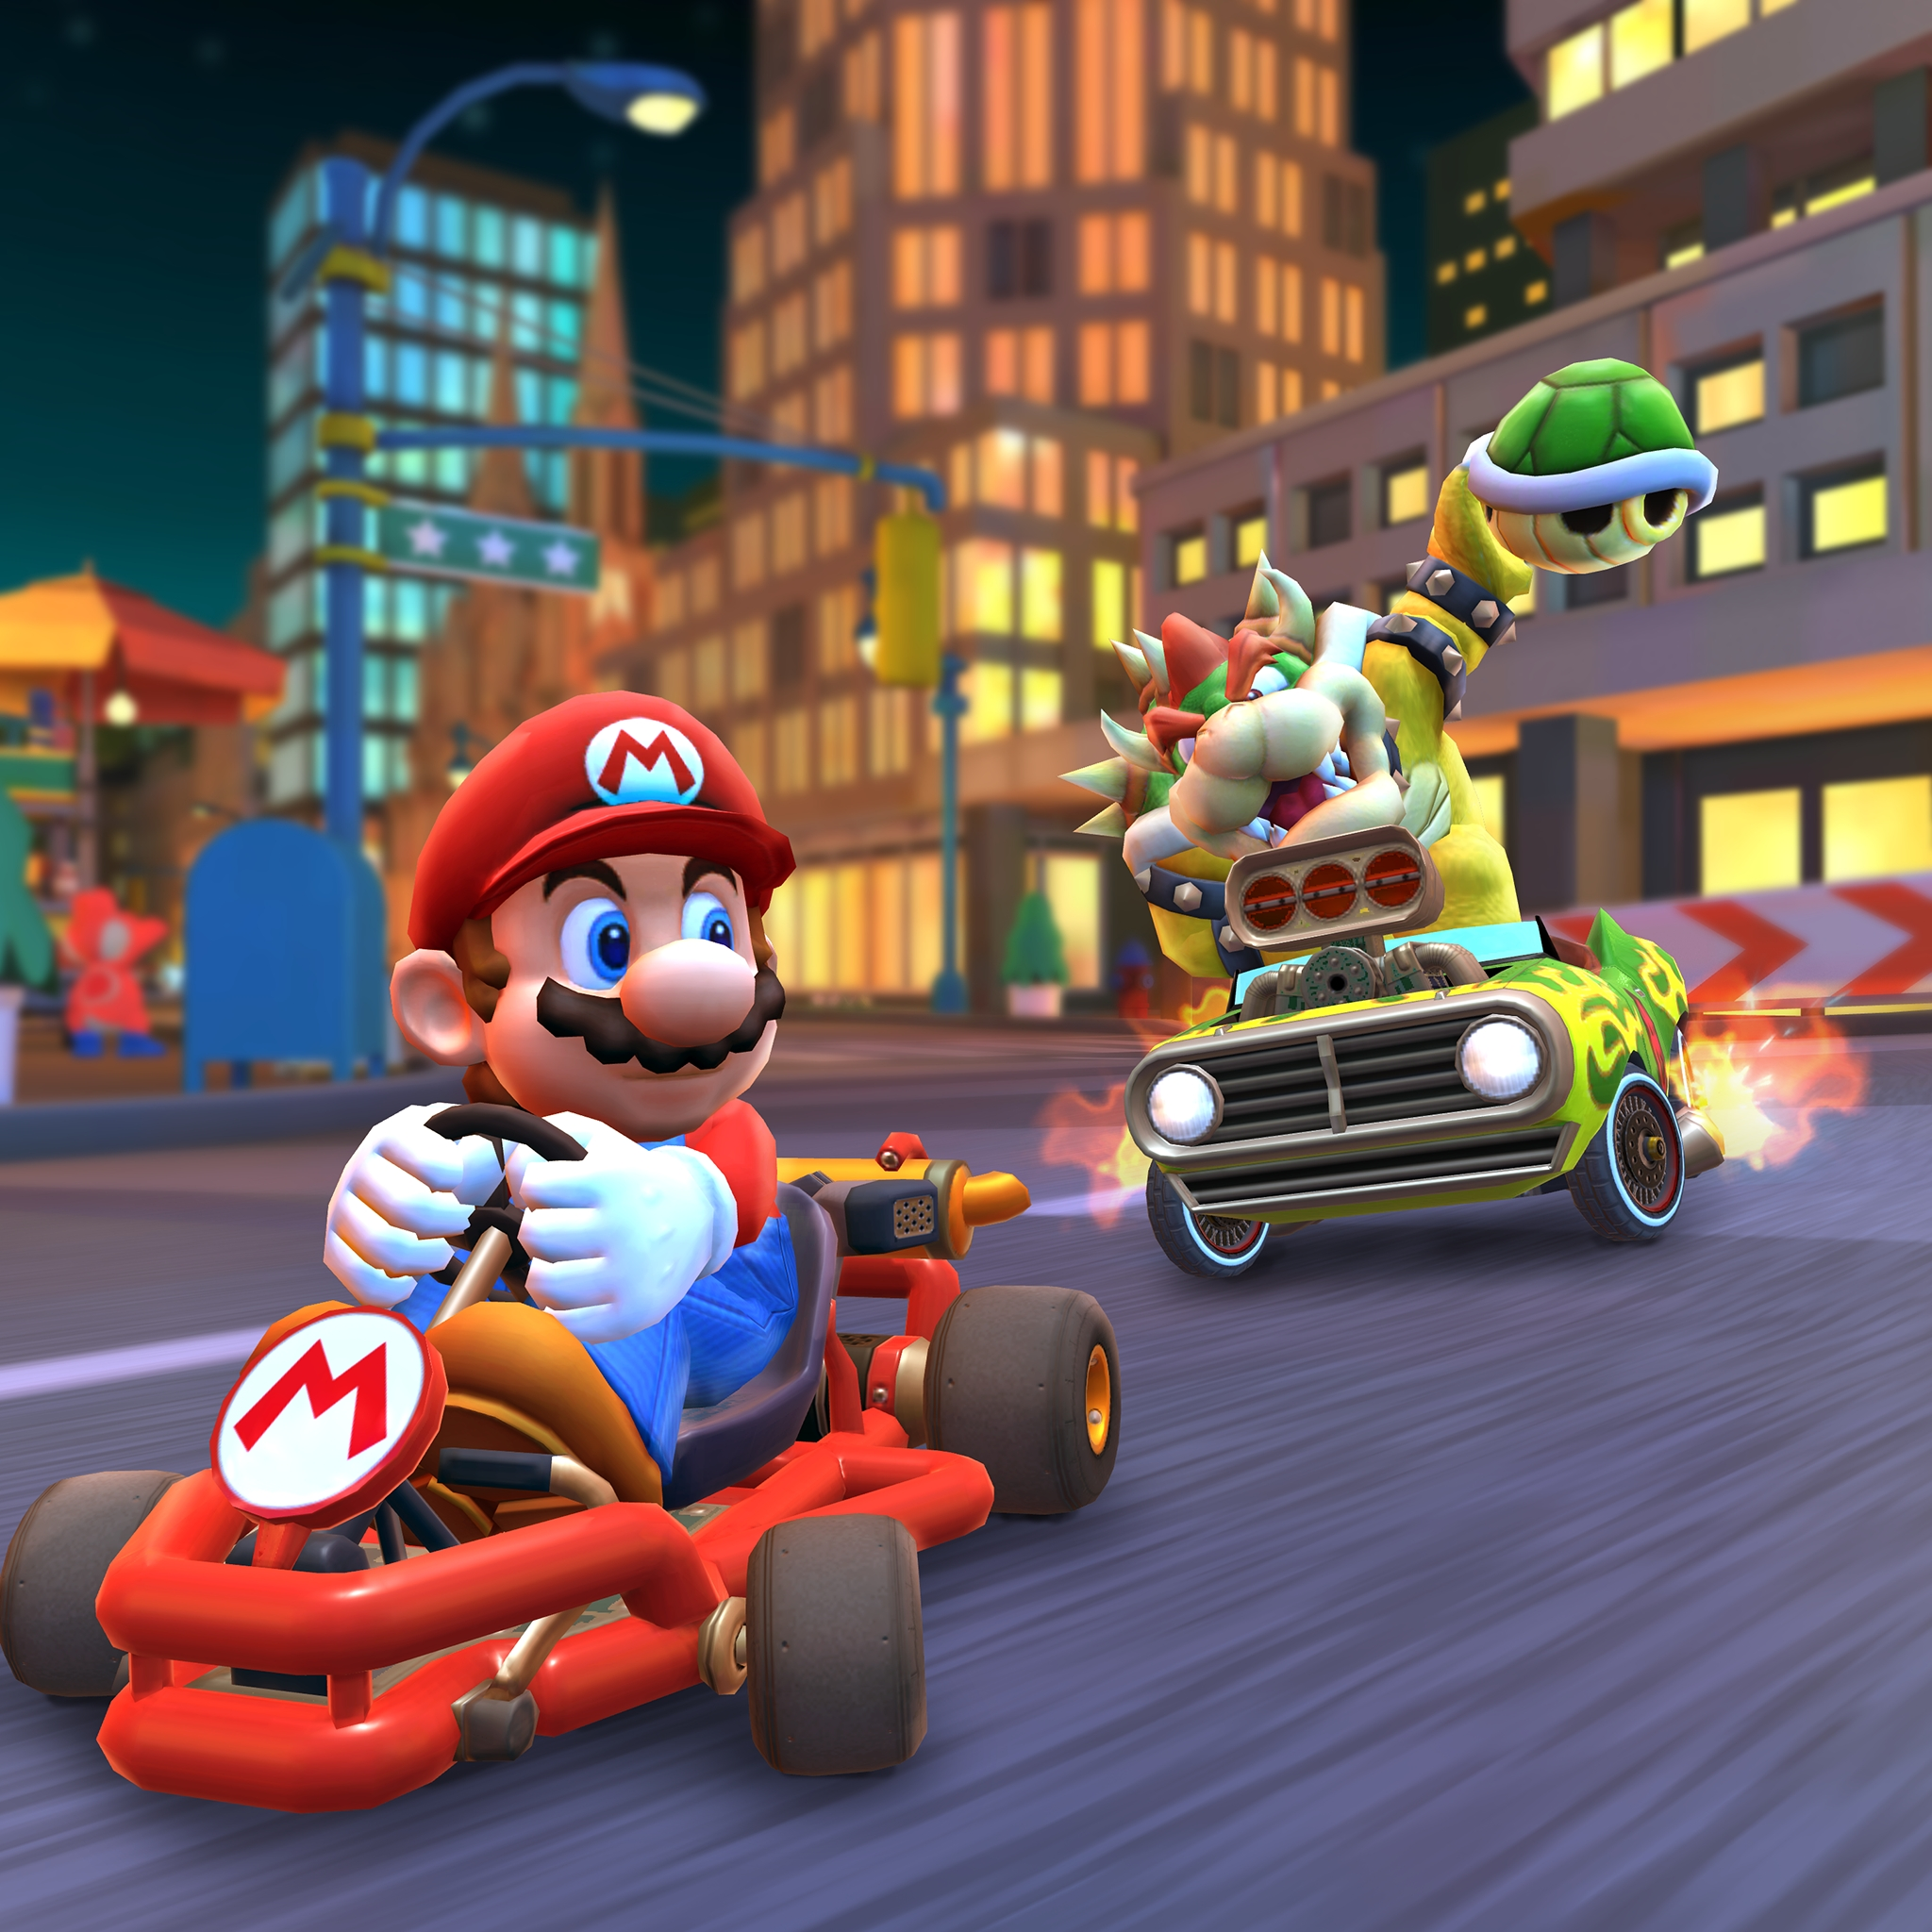 Let S A Race Mario Kart Tour Is Now Available For Smartphone